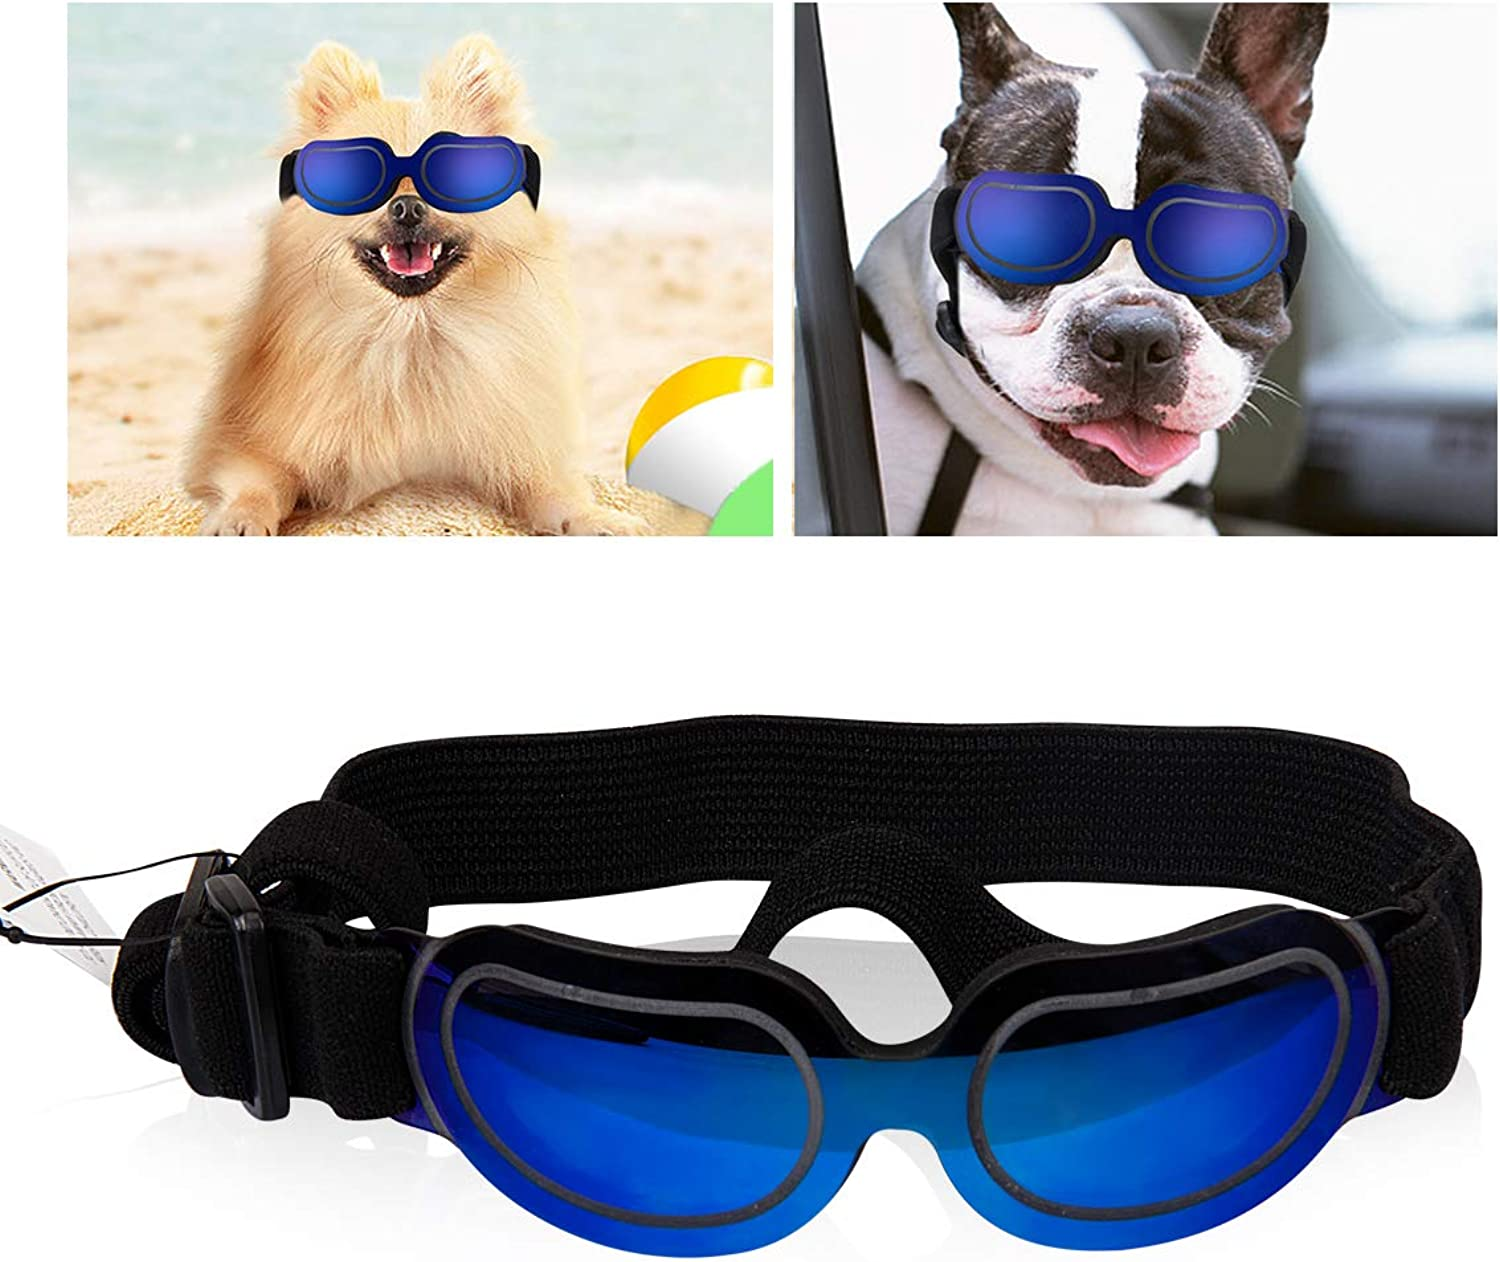 Cavetee Stylish and Fun Small Dog Sunglasses  Dog Goggles for UV Predection Sunglasses Windproof  Adjustable Sunglasses for Puppy Doggy Cat